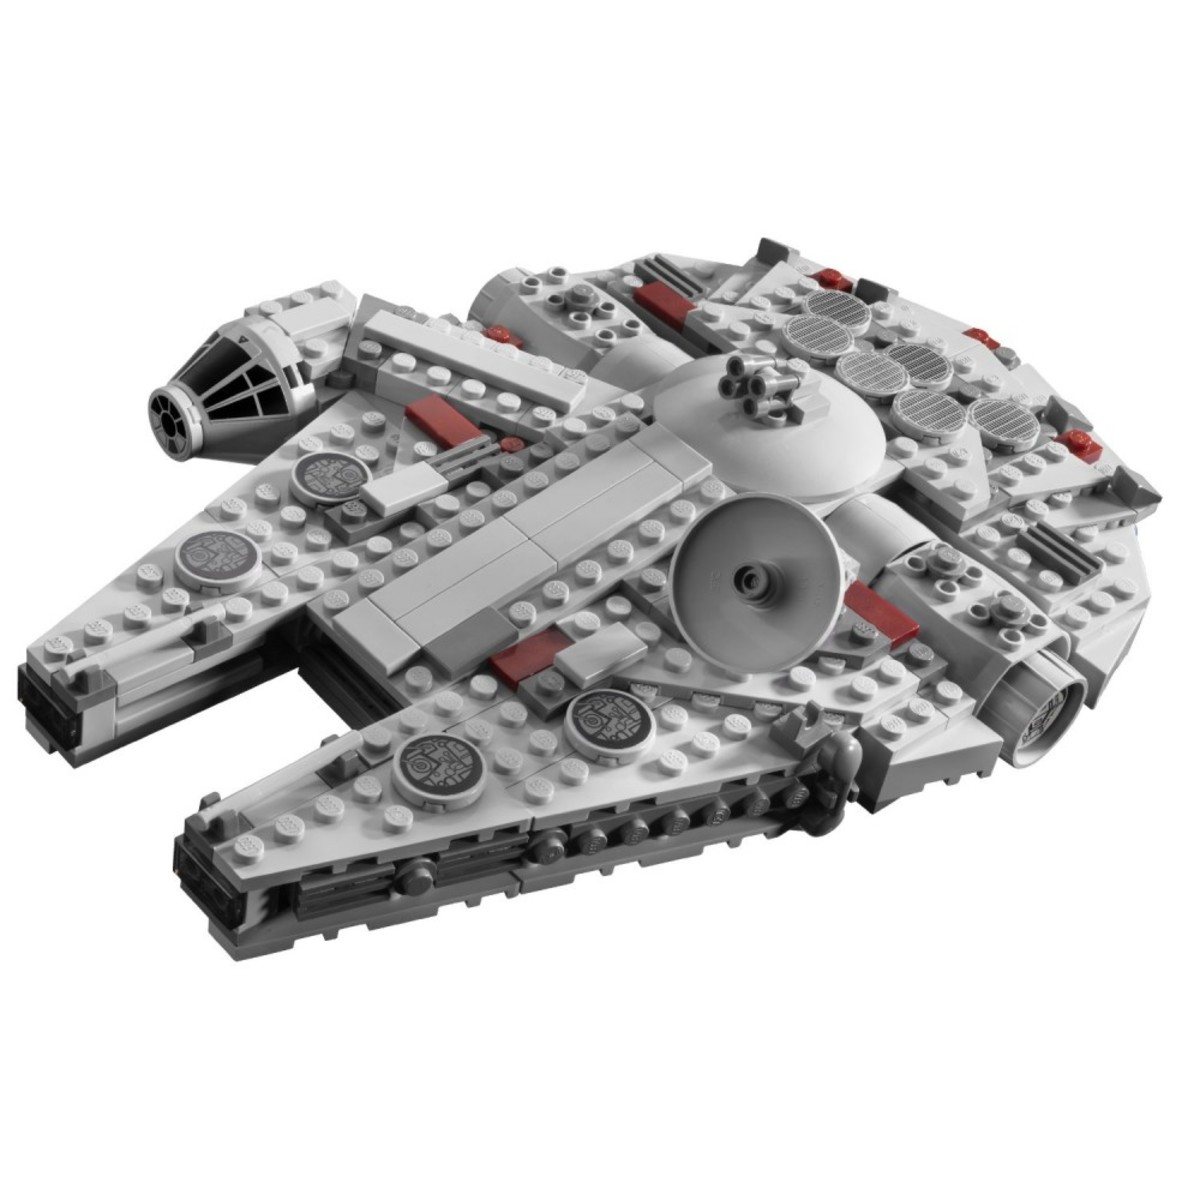 LEGO Star Wars Midi-Scale Millennium Falcon 7778 Assembled